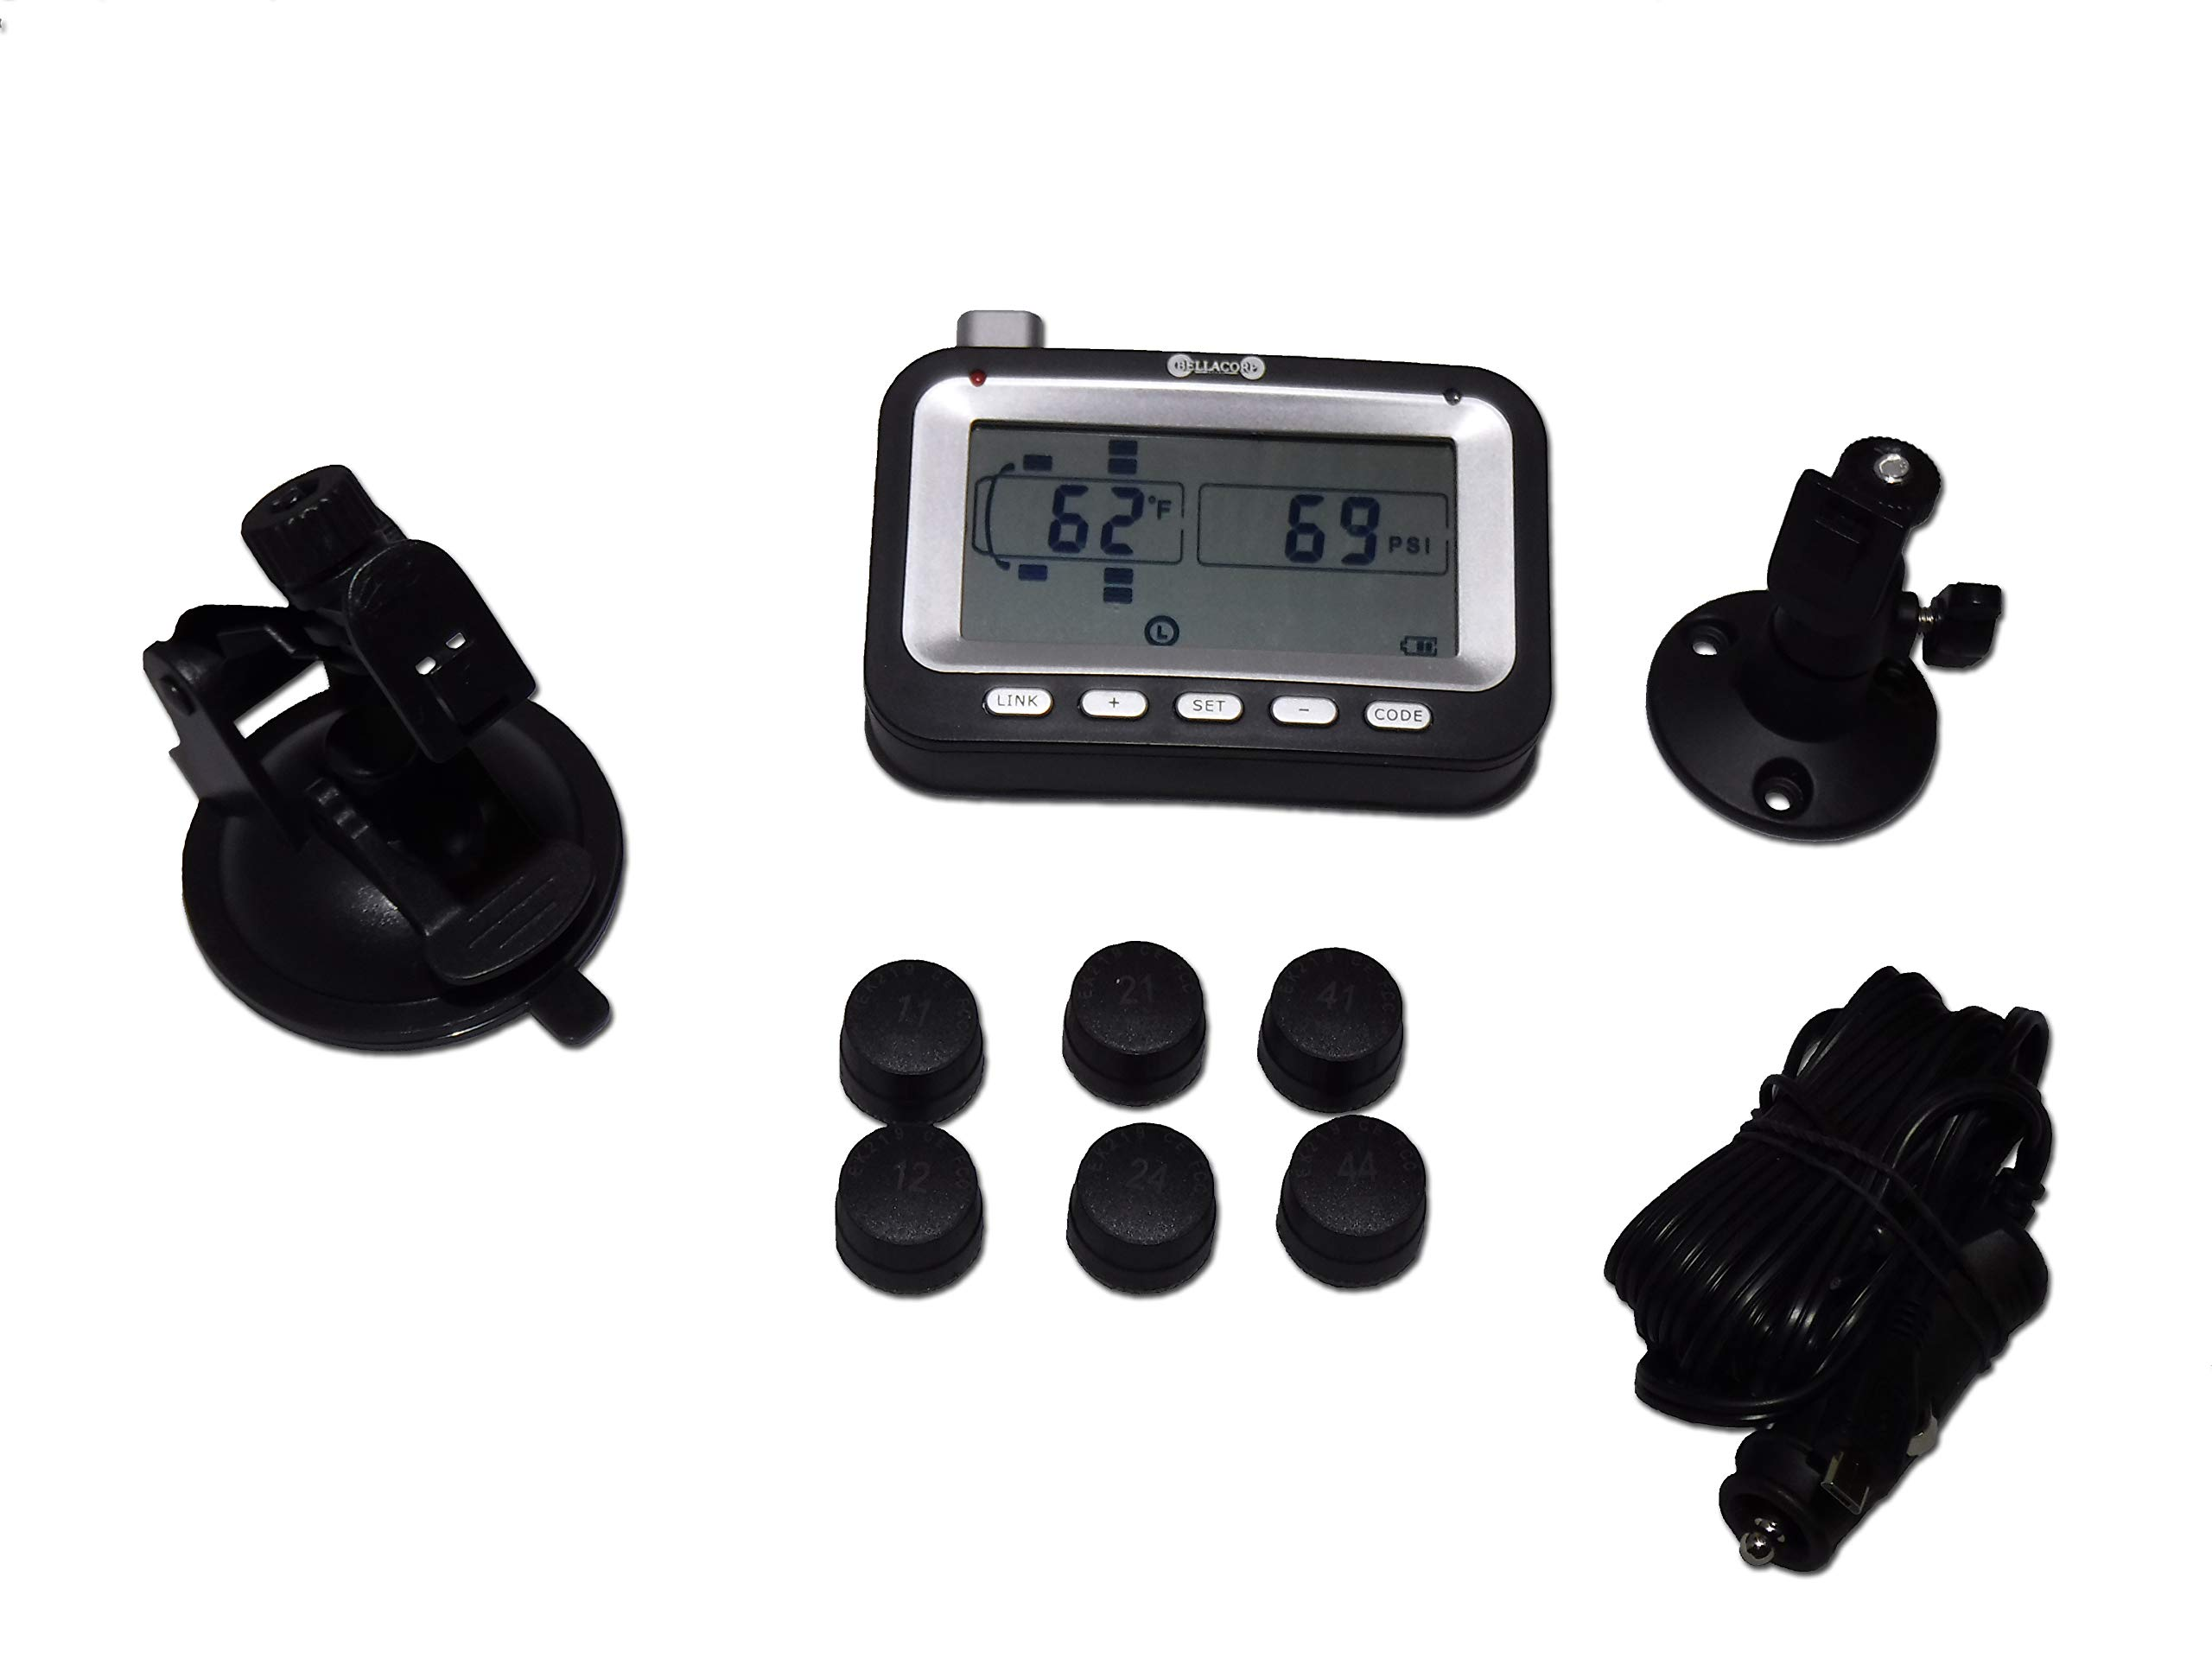 Bellacorp Tire Pressure Monitoring System TPMS 6BU (6) Sensors for Truck, RV, Heavy Pickup, Dually or Box Truck